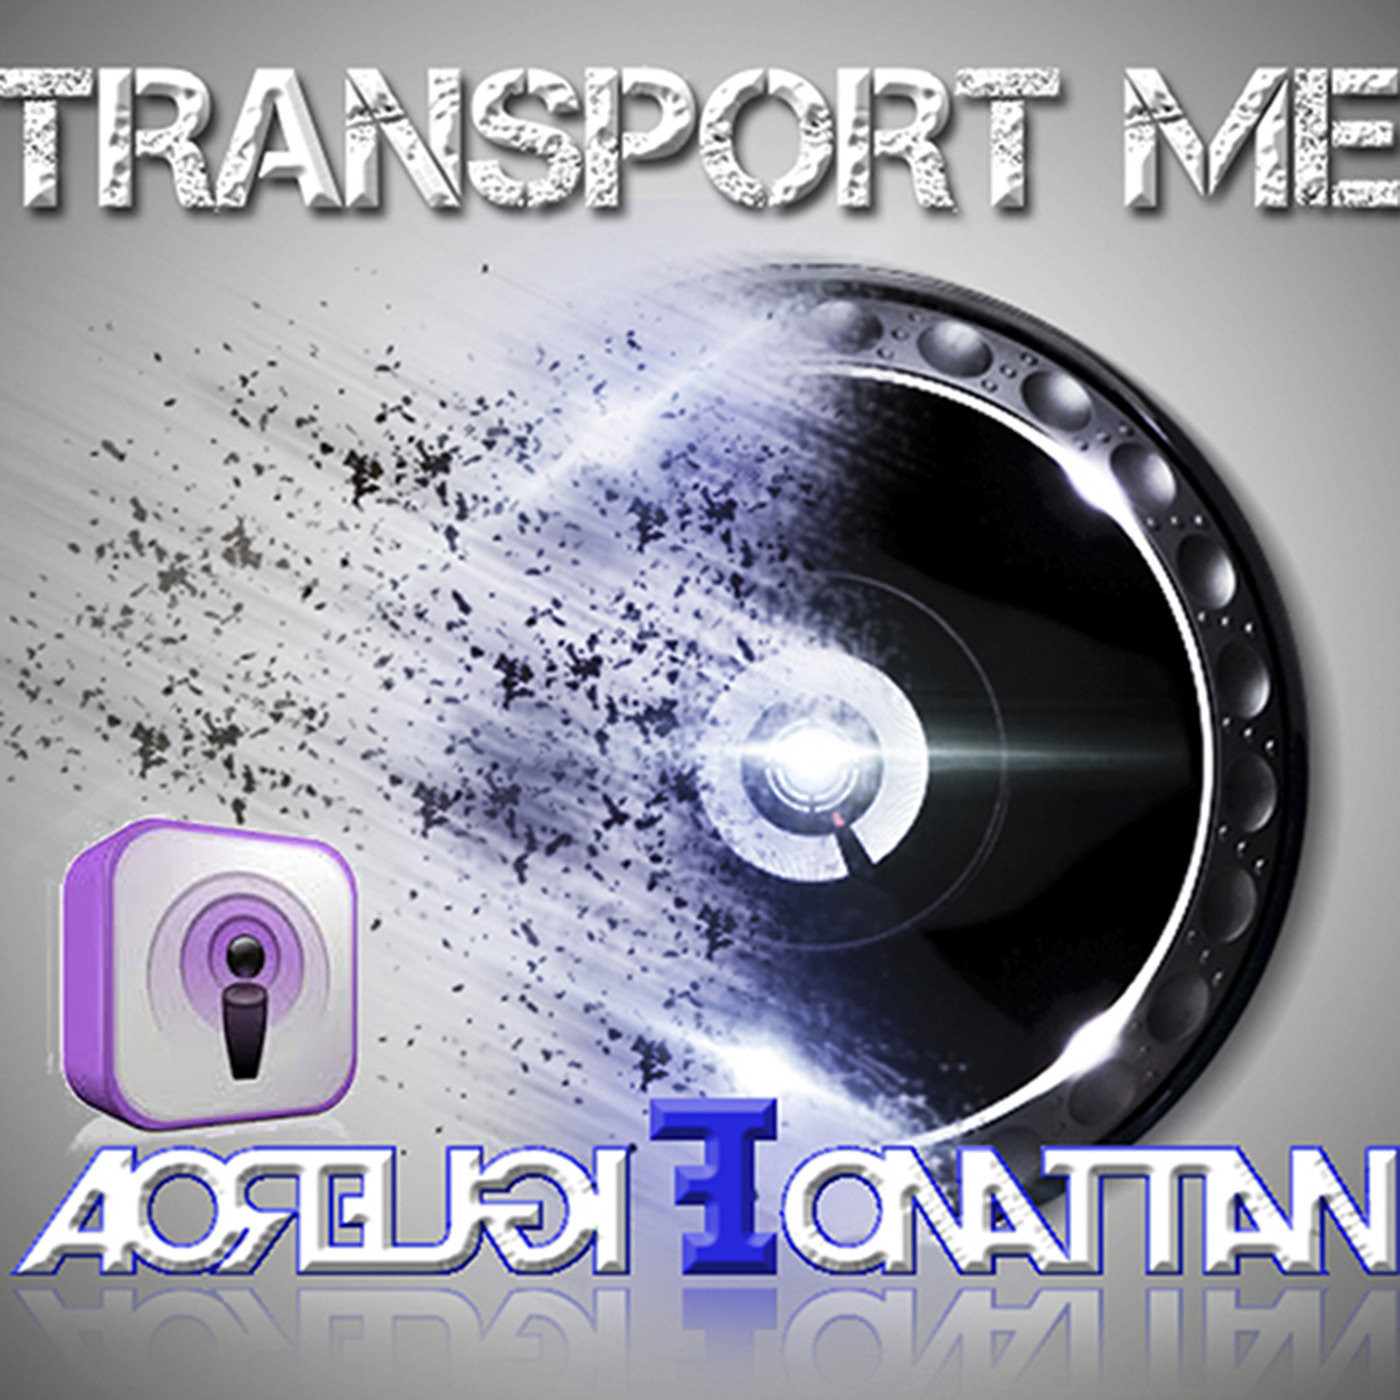 <![CDATA[Podcast Transport me by Ionattan Figueroa]]>